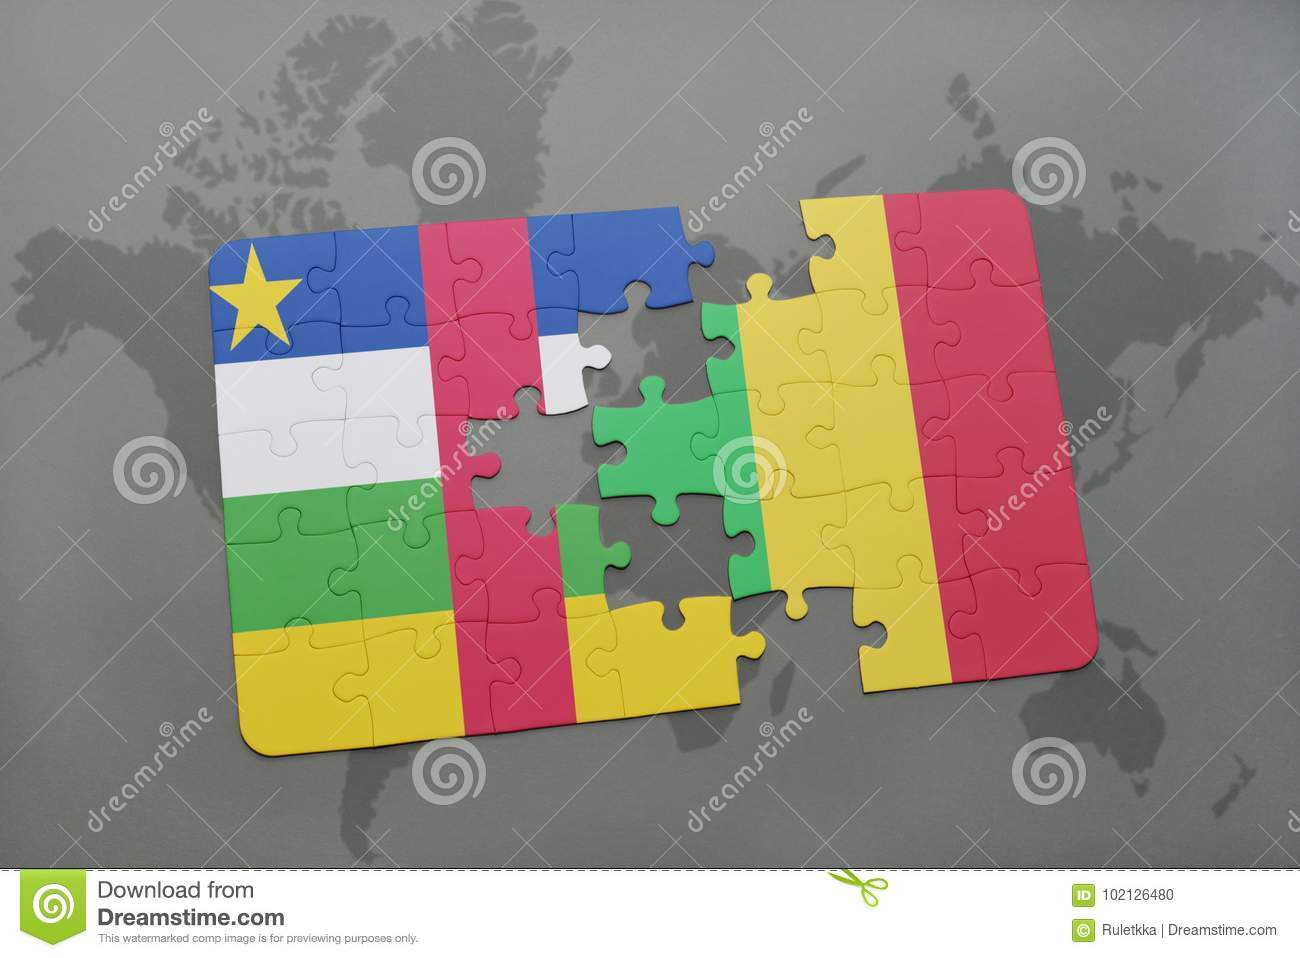 Puzzle with the national flag of central african republic and mali download puzzle with the national flag of central african republic and mali on a world map gumiabroncs Choice Image